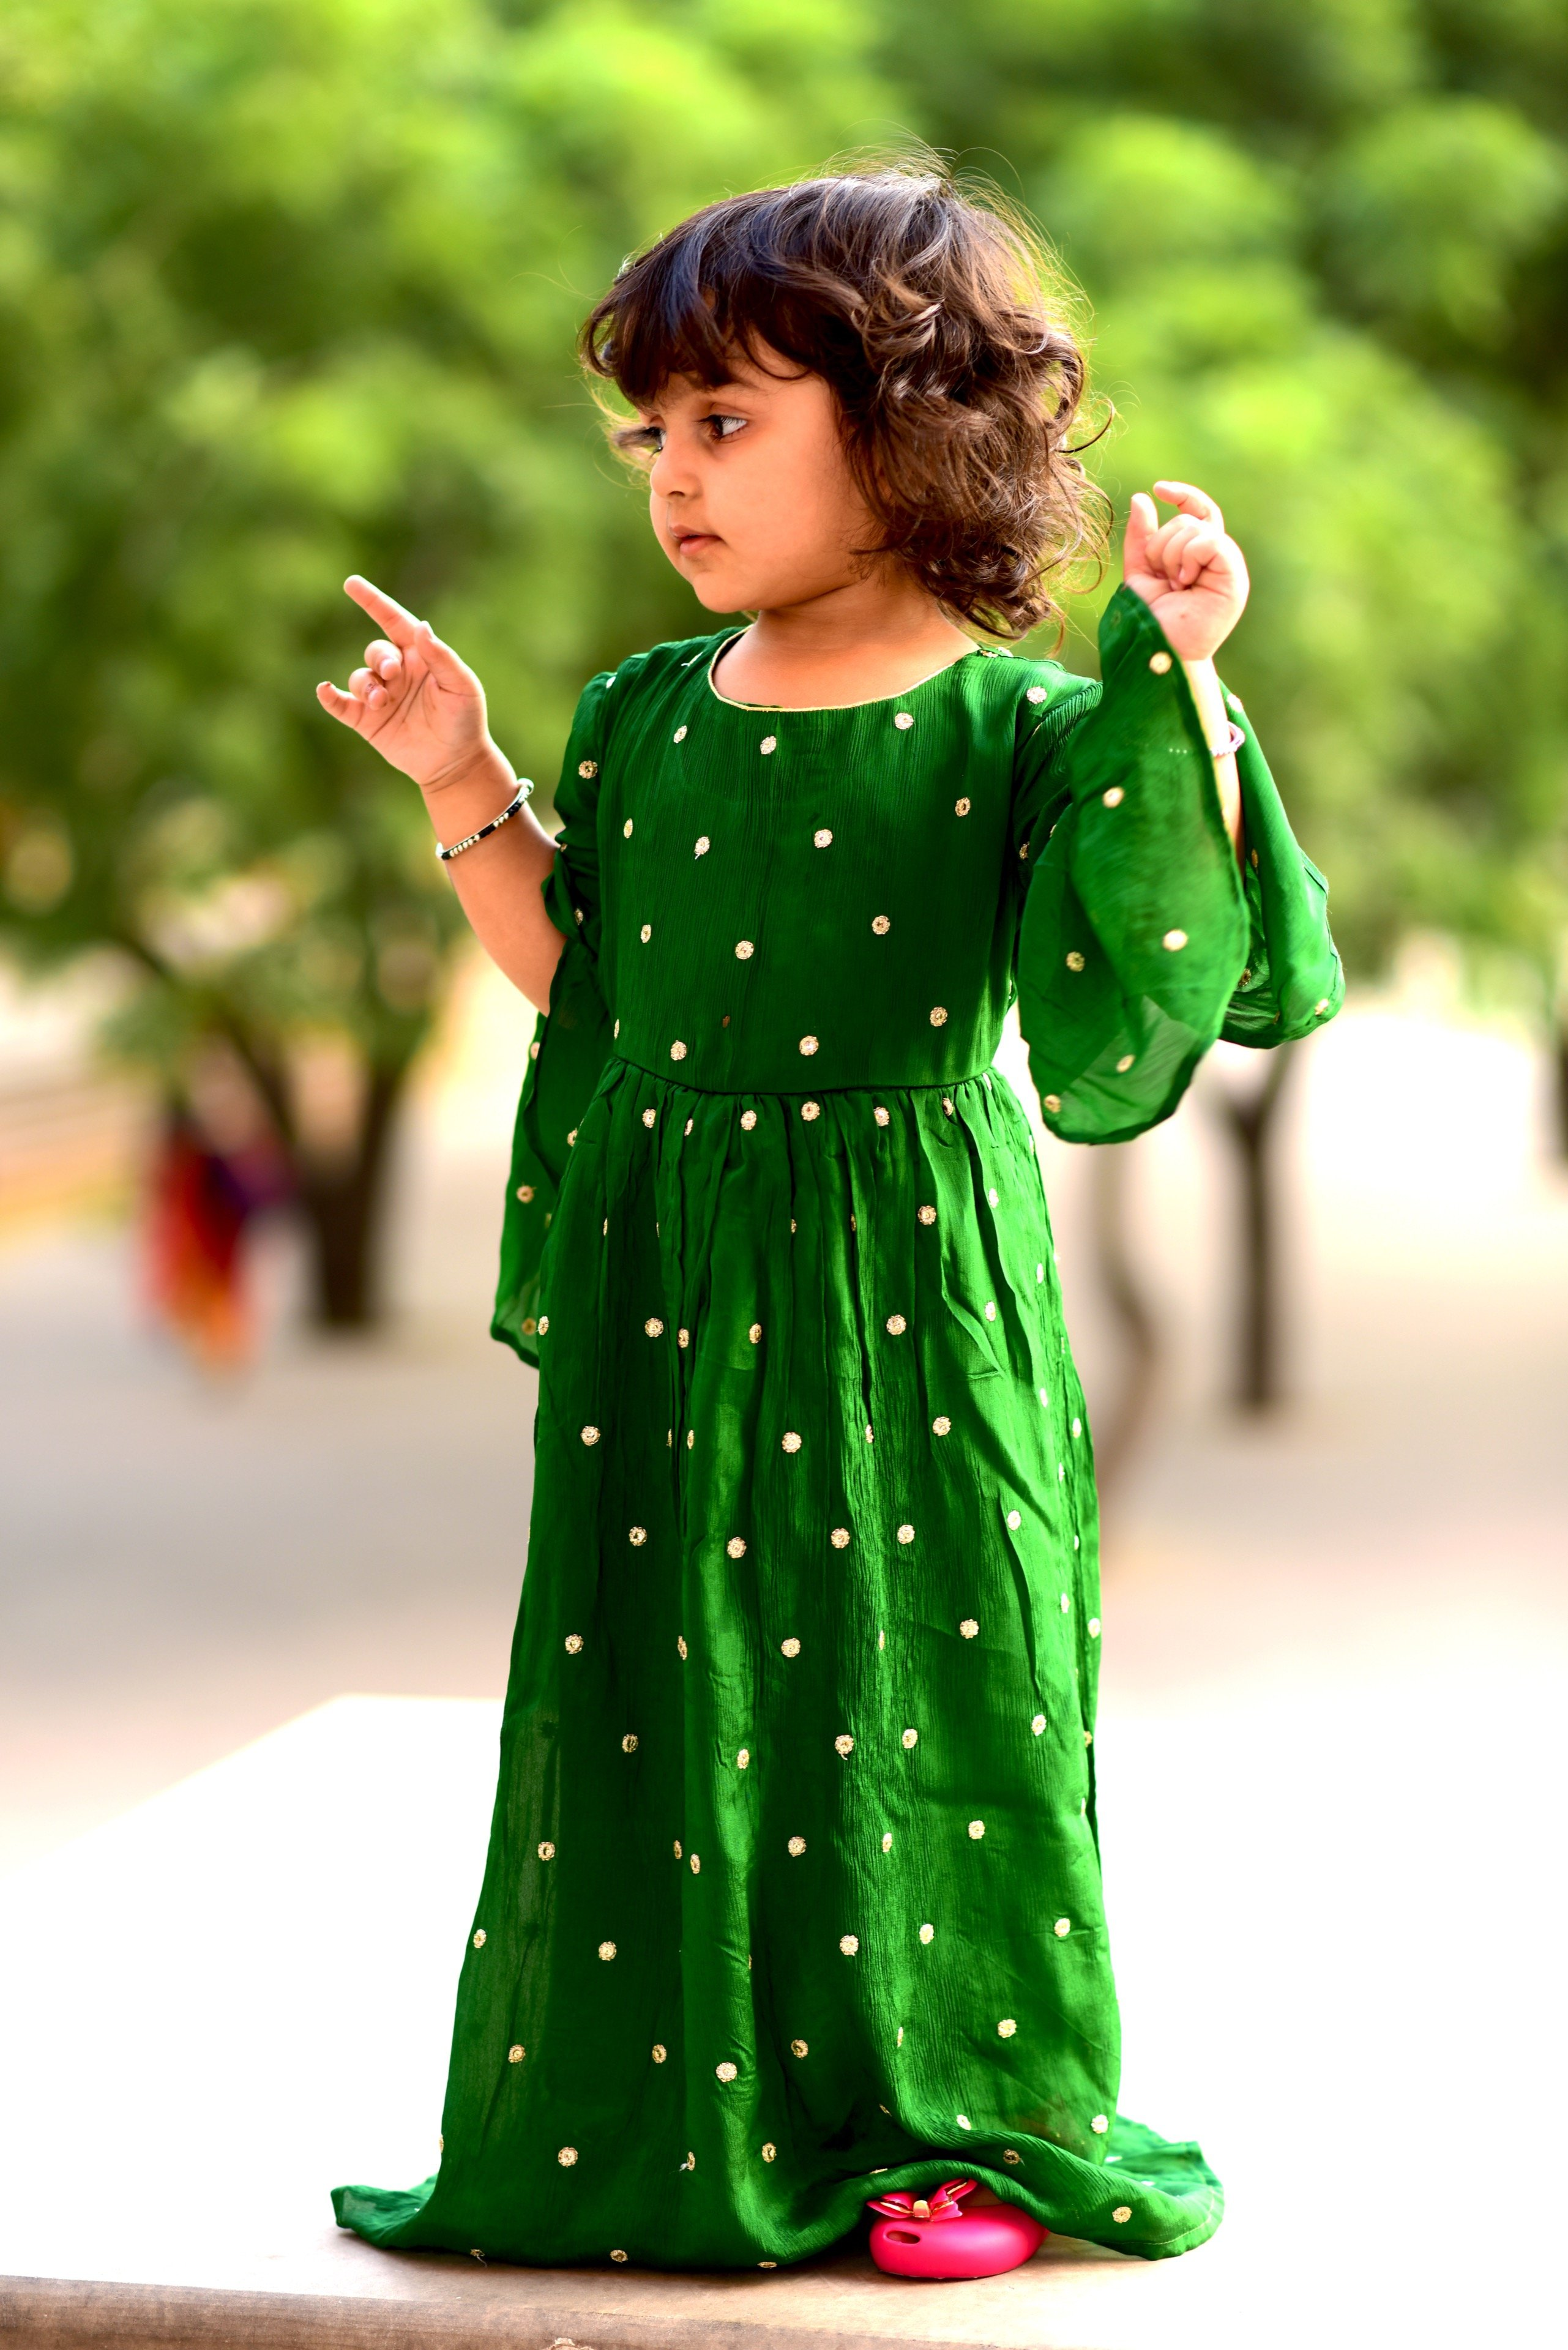 f23bbb1228d3f Green embroidered crepe kids girl gowns - Thread & Button - 2803163